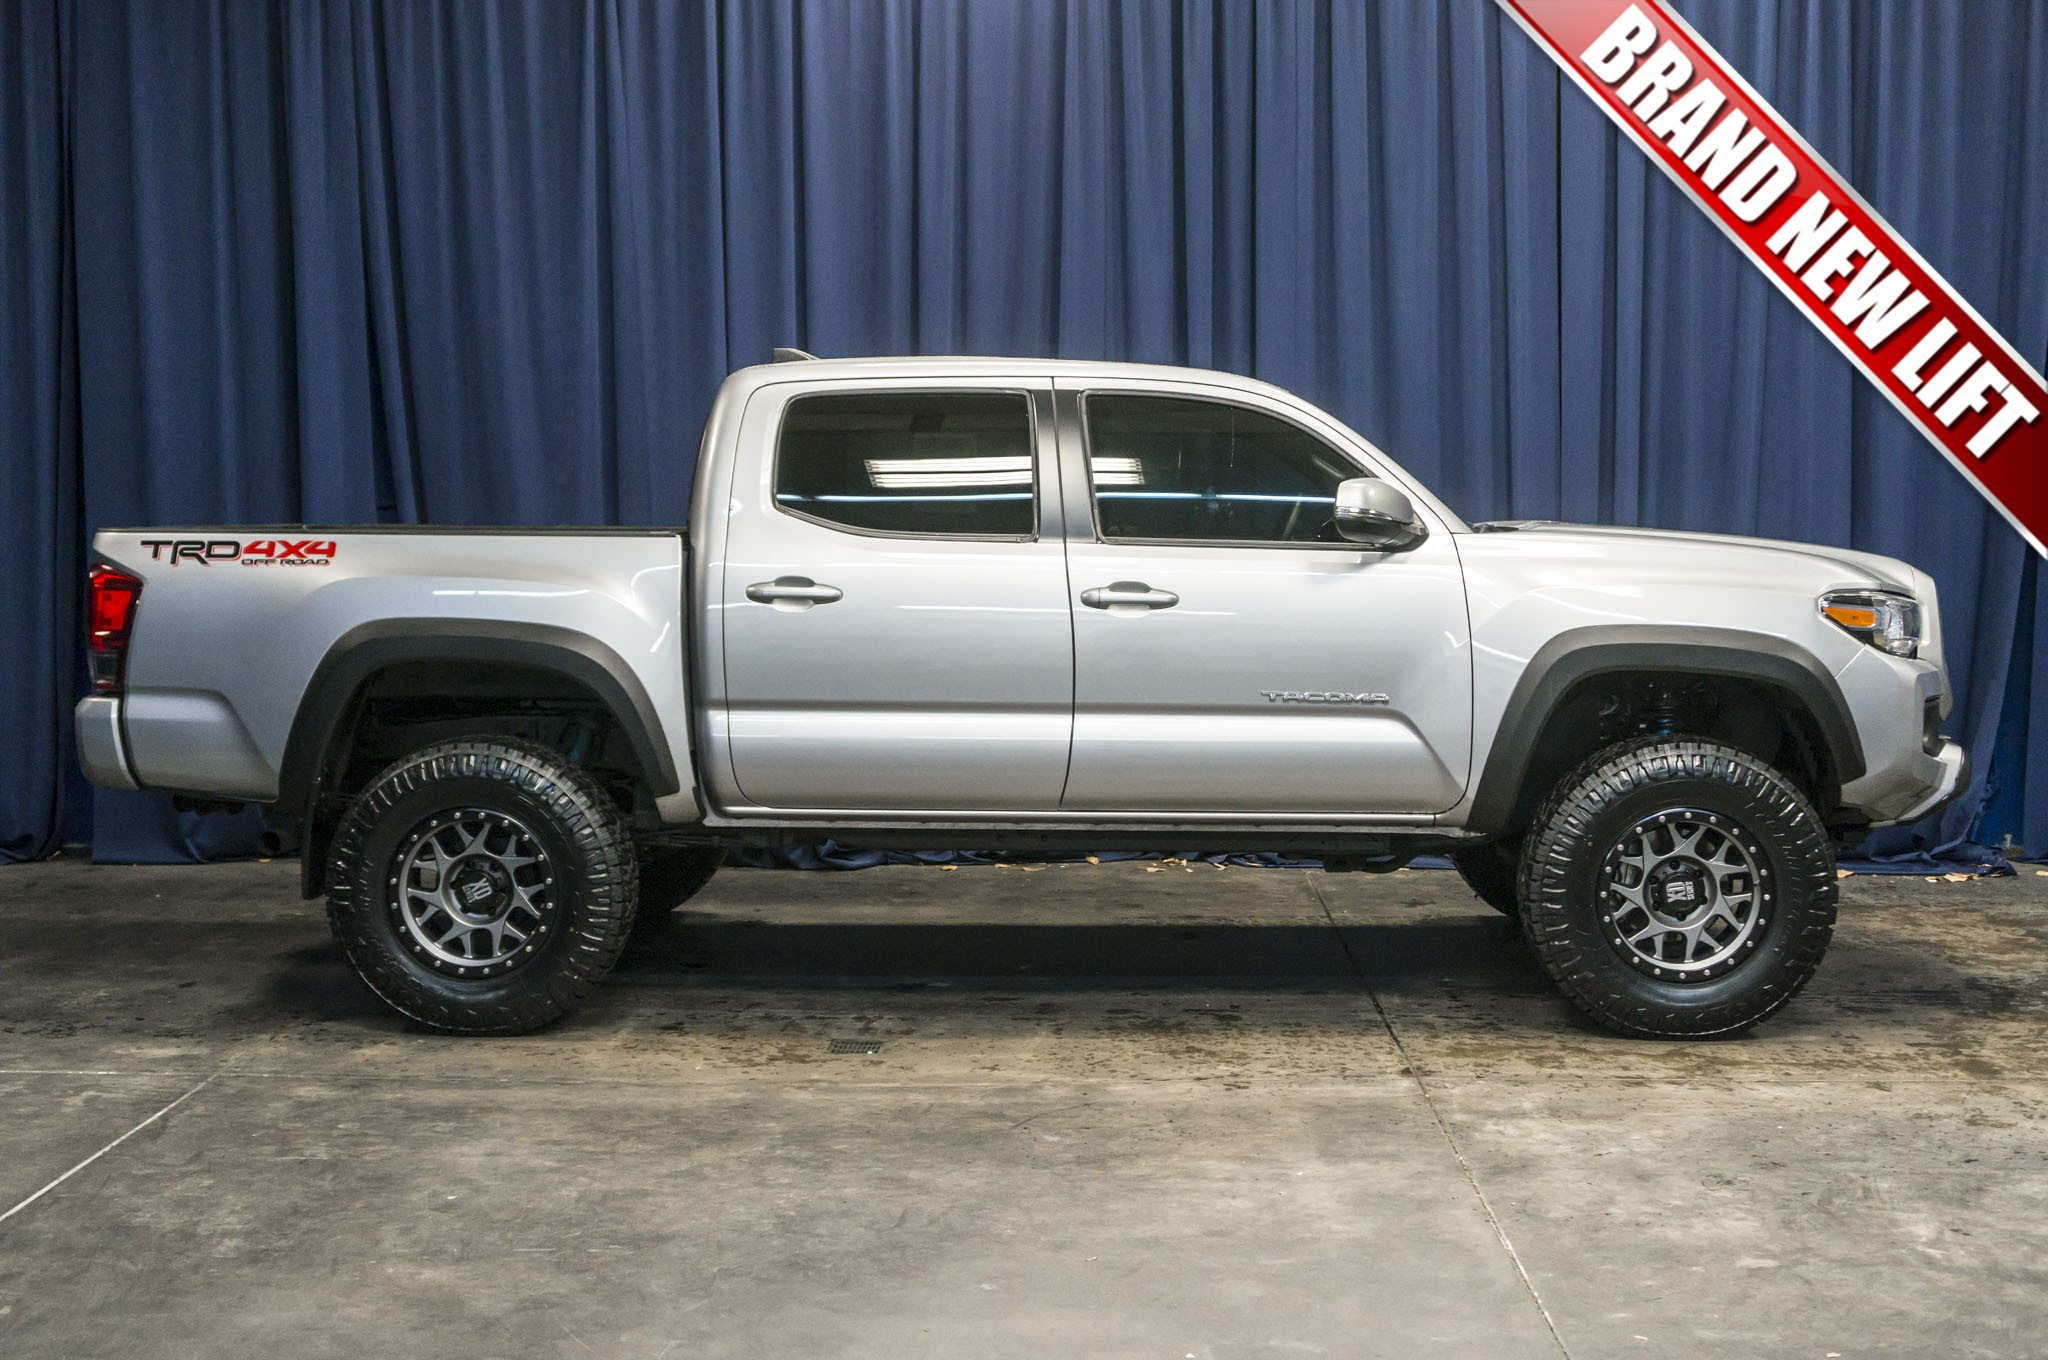 used lifted 2016 toyota tacoma trd 4x4 truck for sale 36962. Black Bedroom Furniture Sets. Home Design Ideas